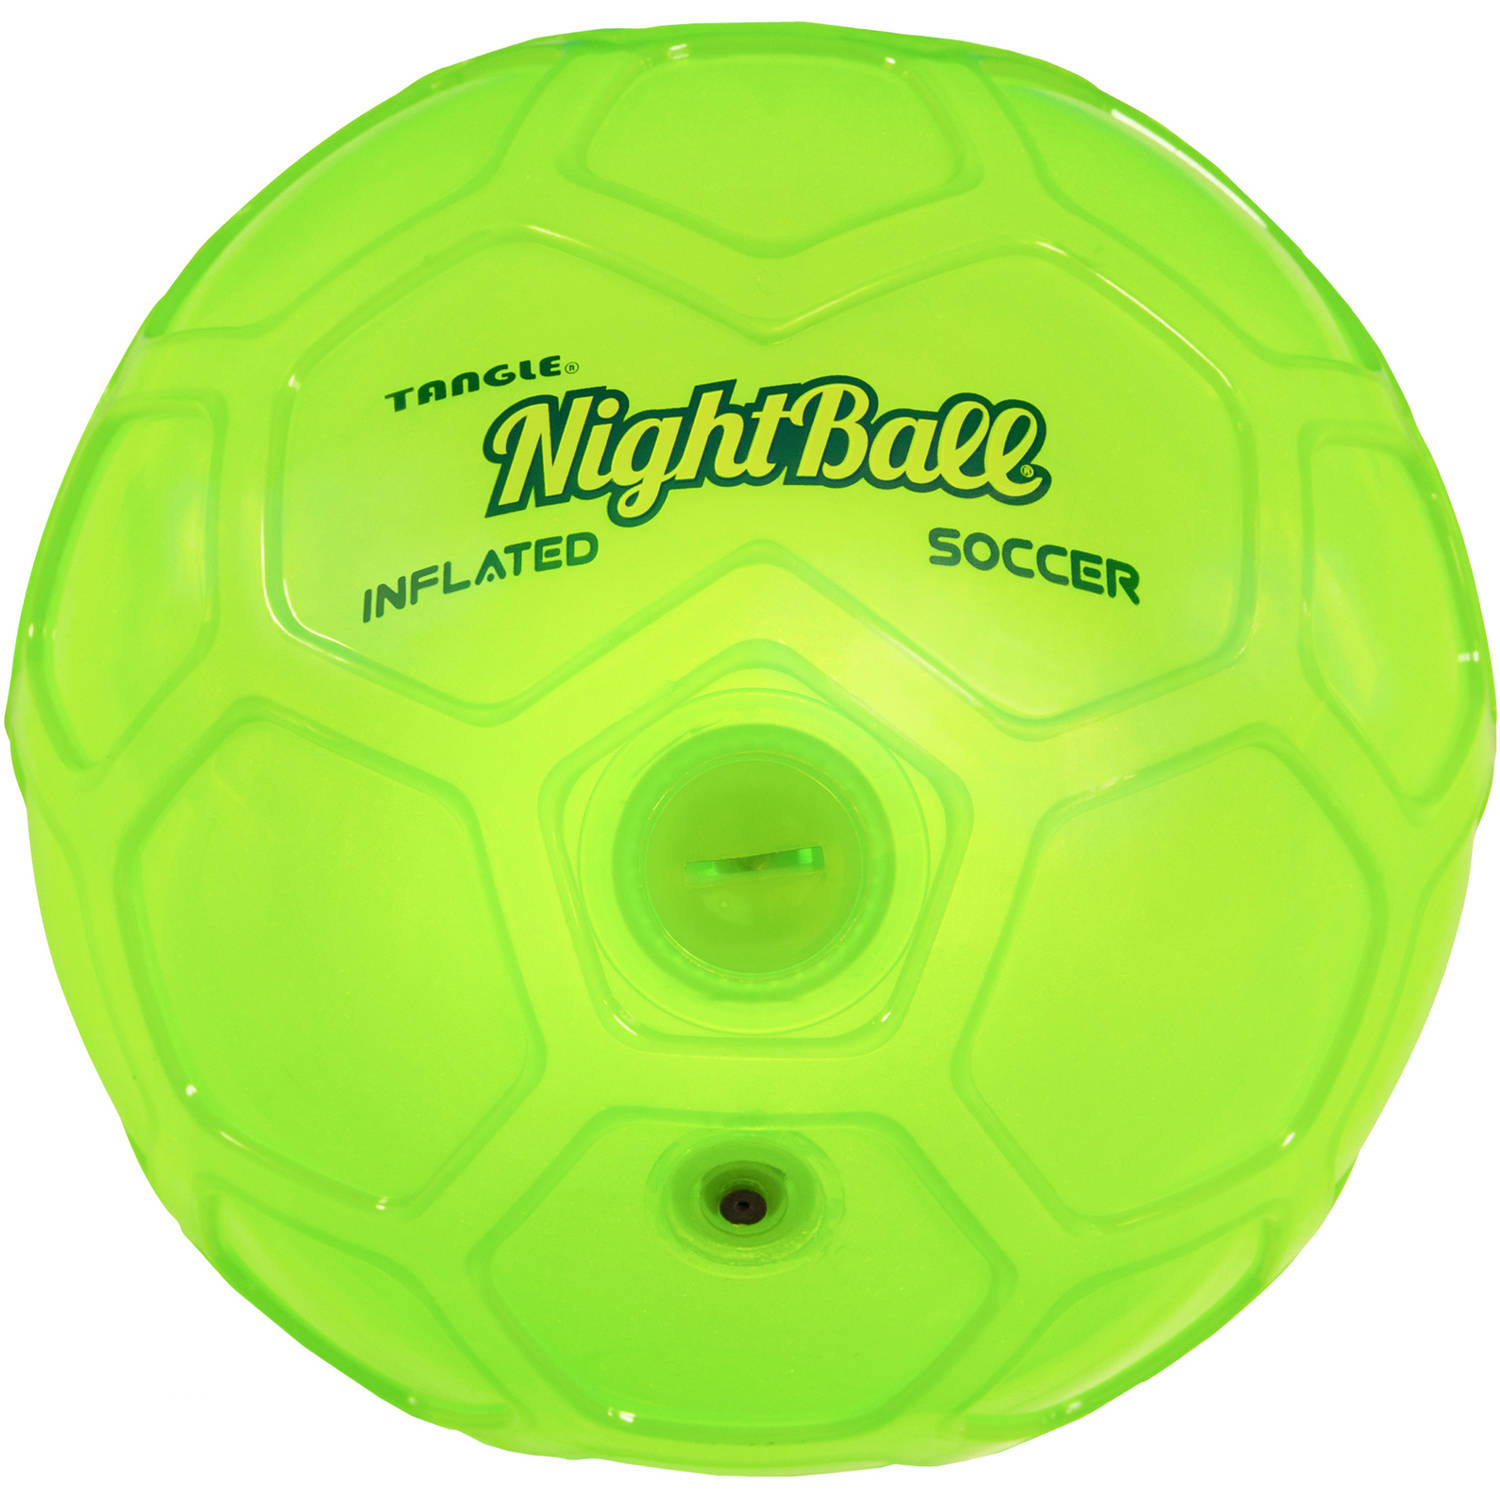 Tangle Night Soccer Ball, Size 5, Green